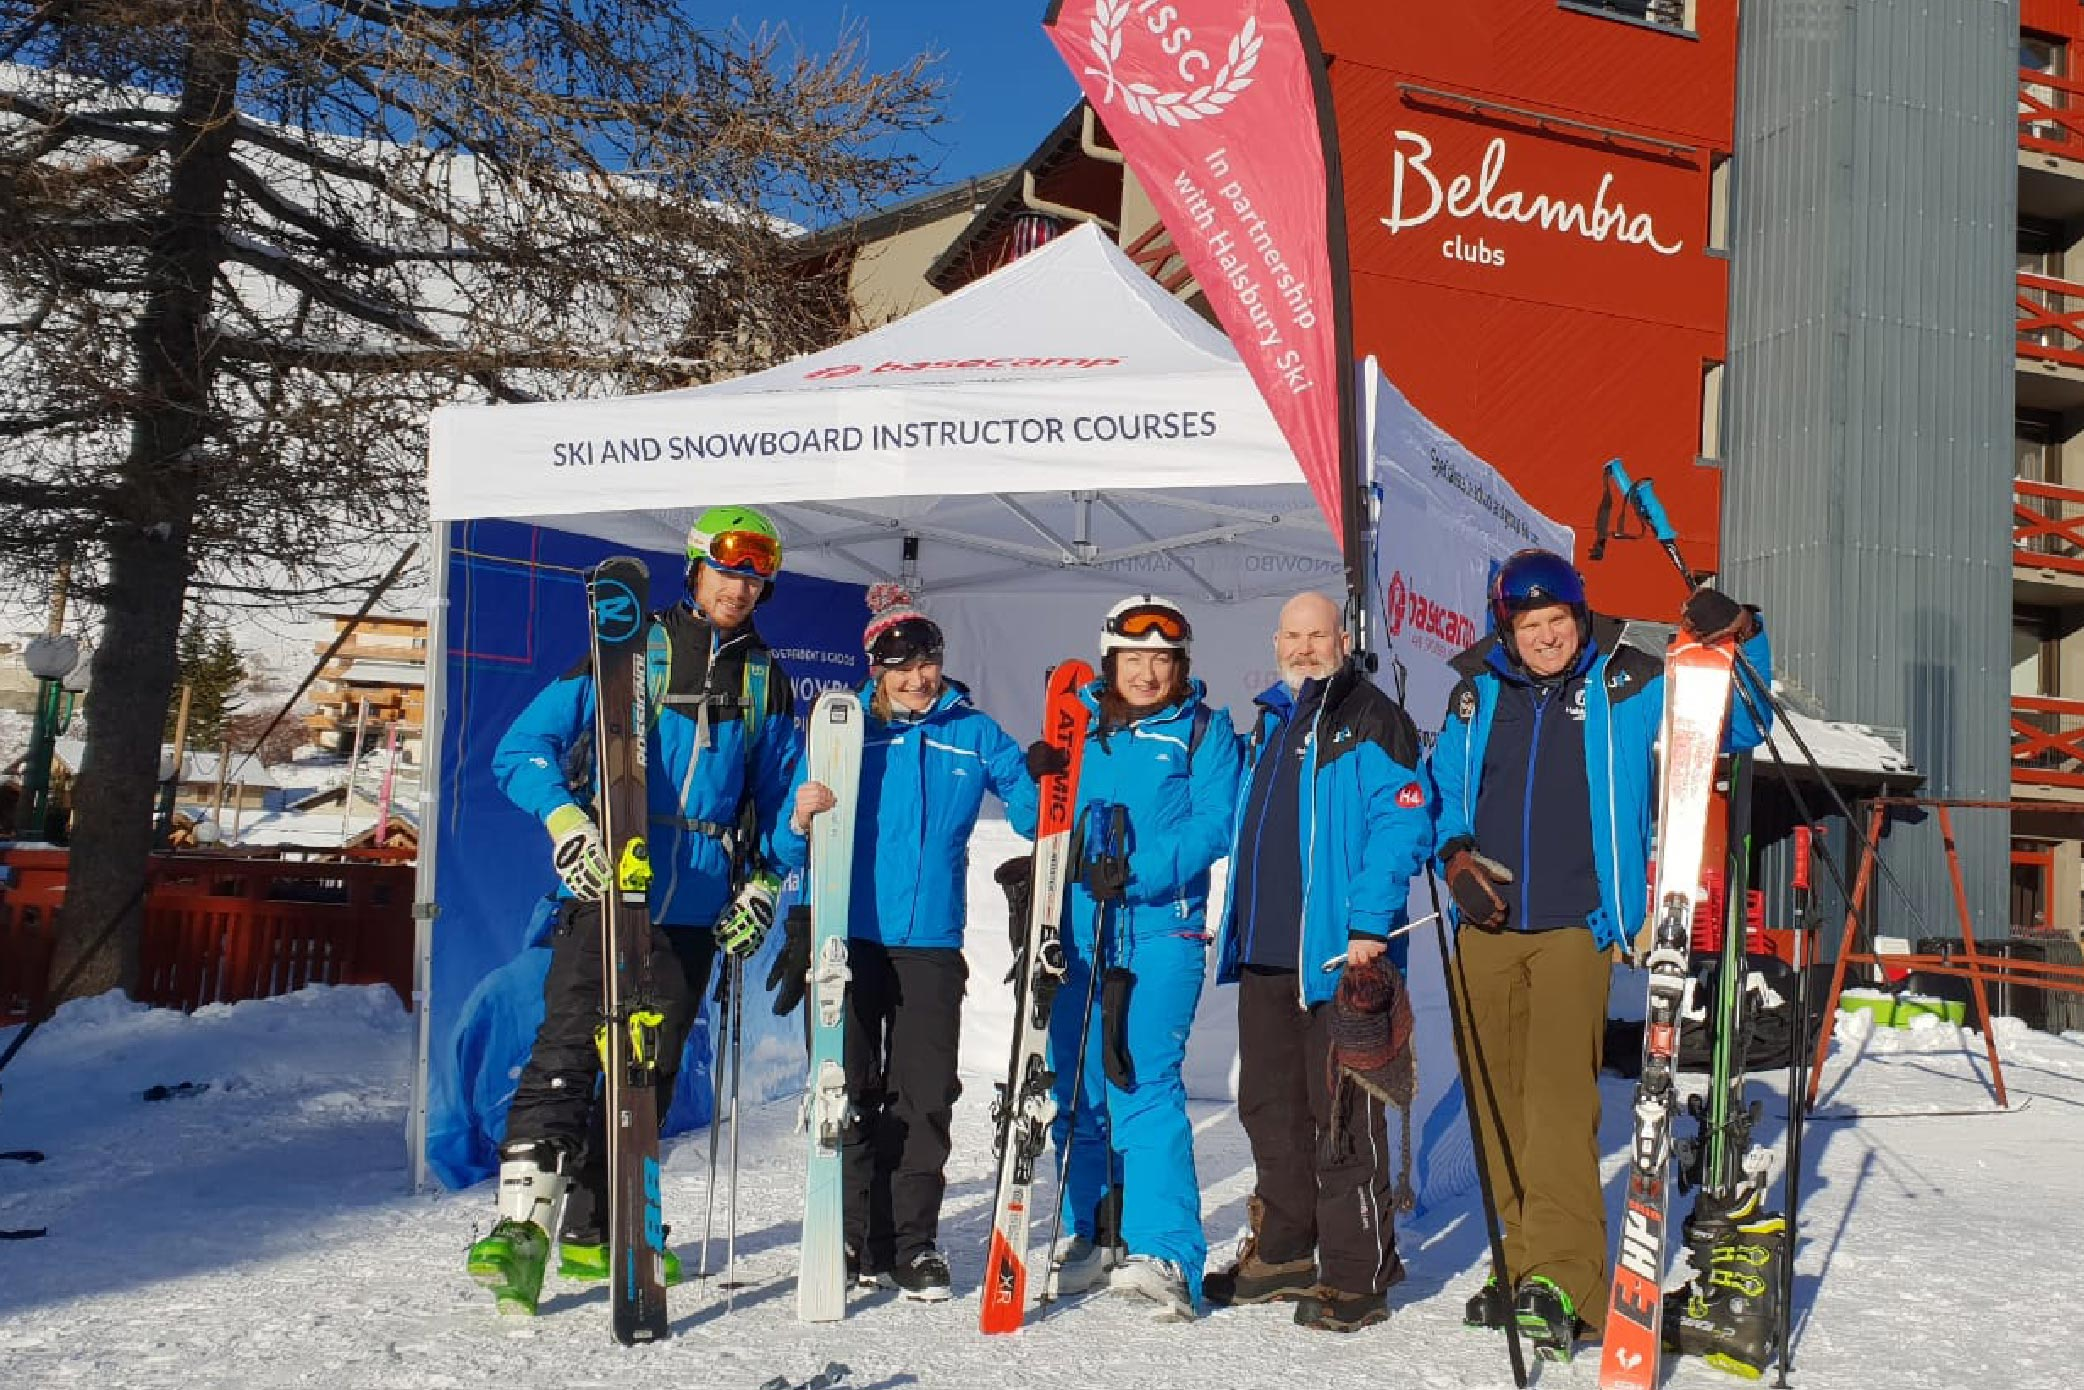 Who are Halsbury Ski-07